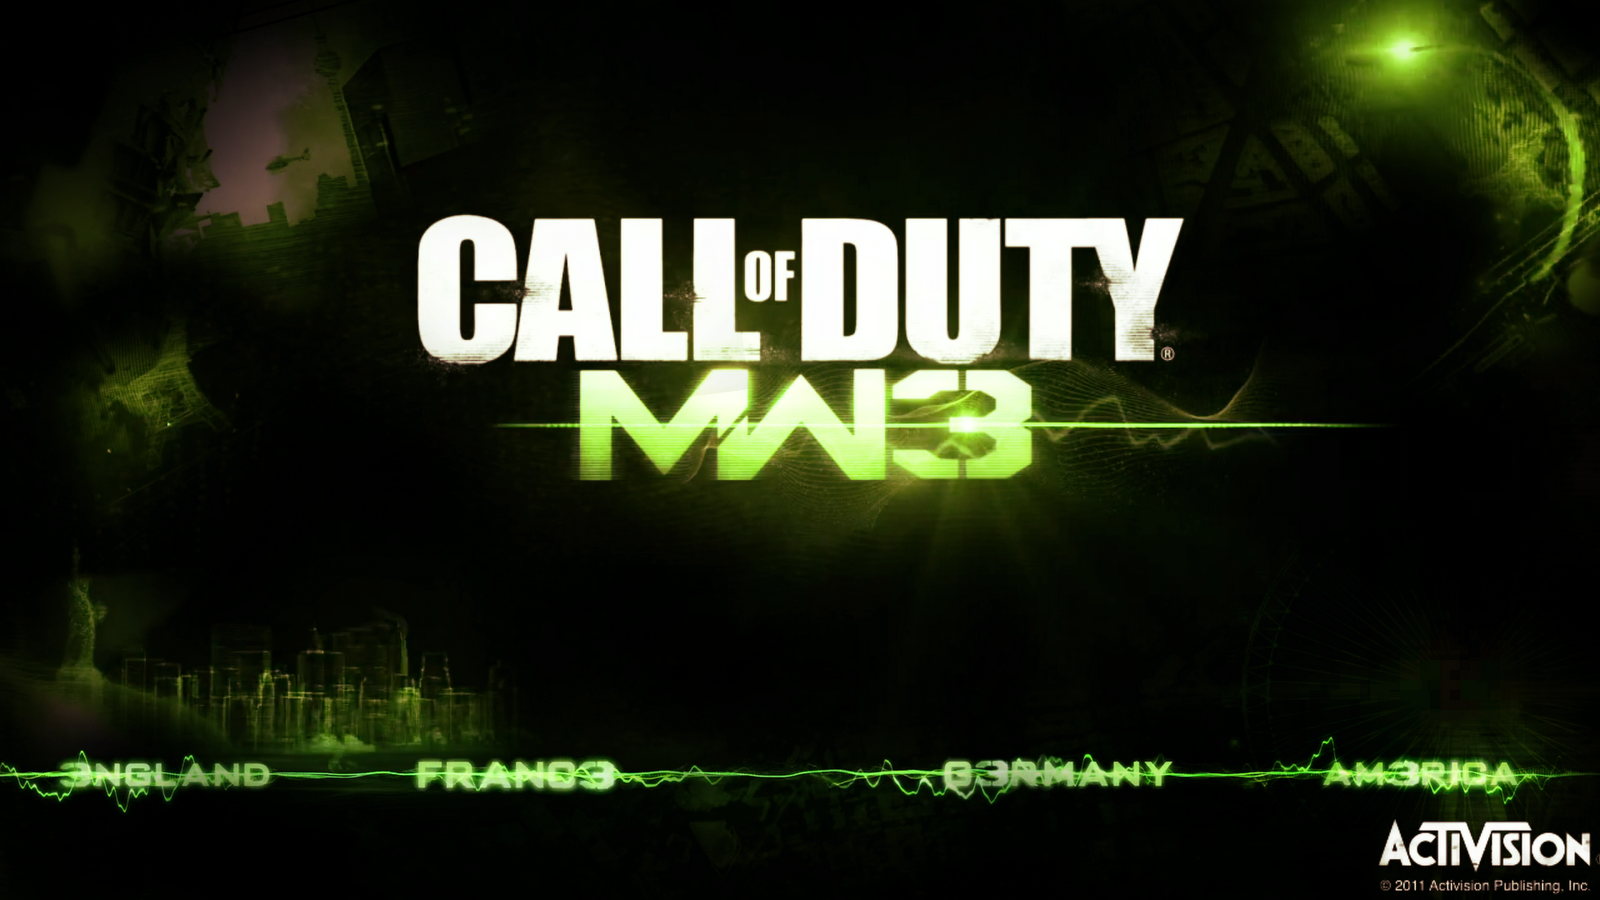 http://1.bp.blogspot.com/-8d-Plq1xKvU/UKnywOgm_fI/AAAAAAAAAKc/1qPWgc3D5i4/s1600/call+of+duty+modern+warfare+3+hd+wallpapers+(1).png